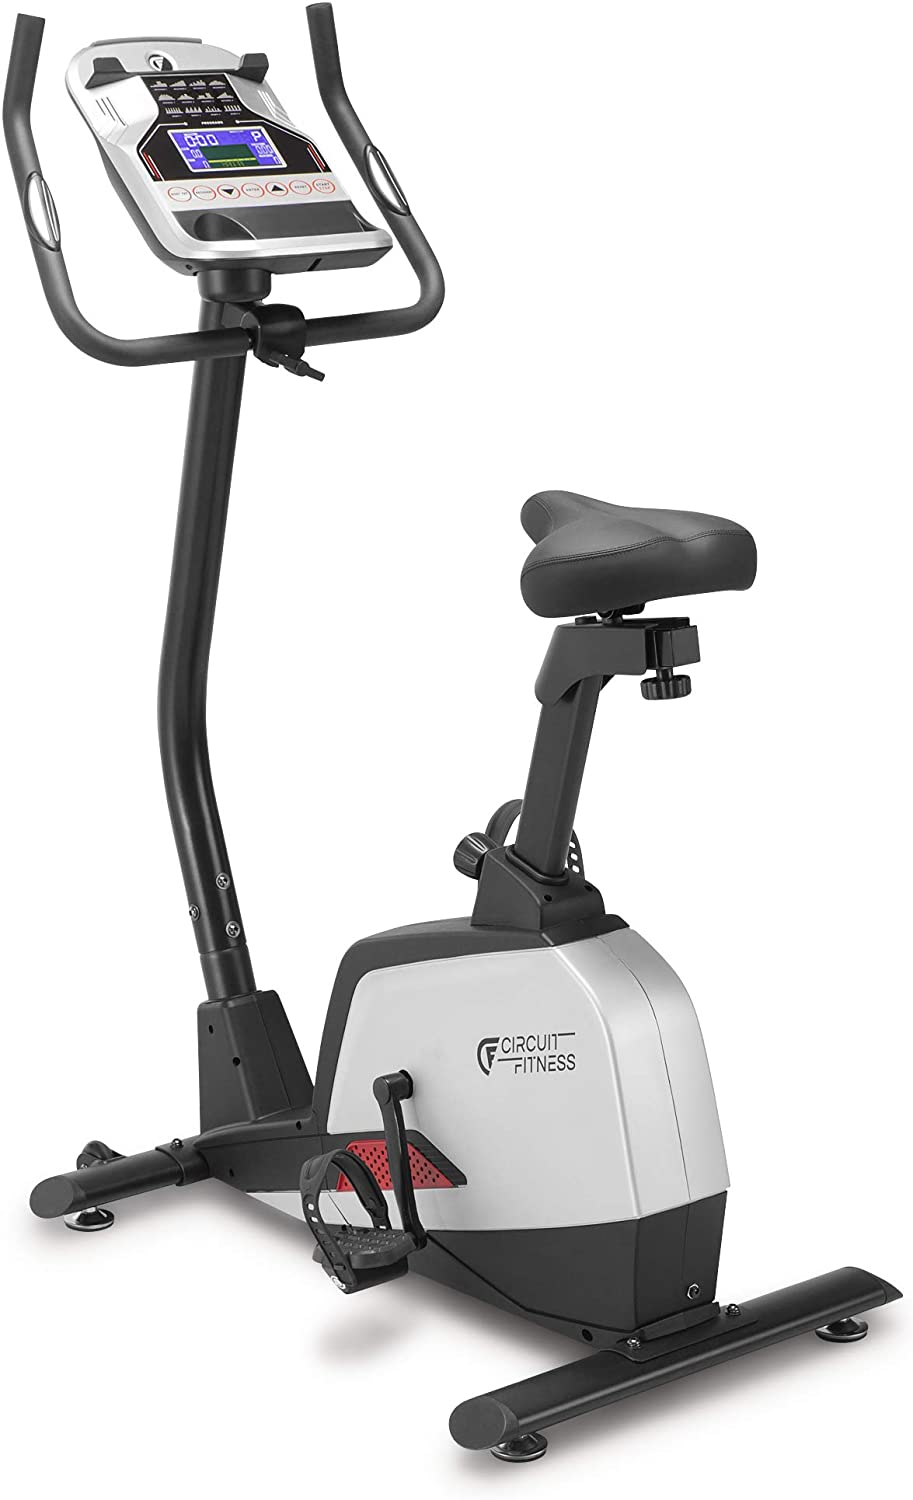 Circuit Fitness Magnetic Upright Exercise Bike with 15 Workout Presets, 300 lbs Capacity AMZ-594U